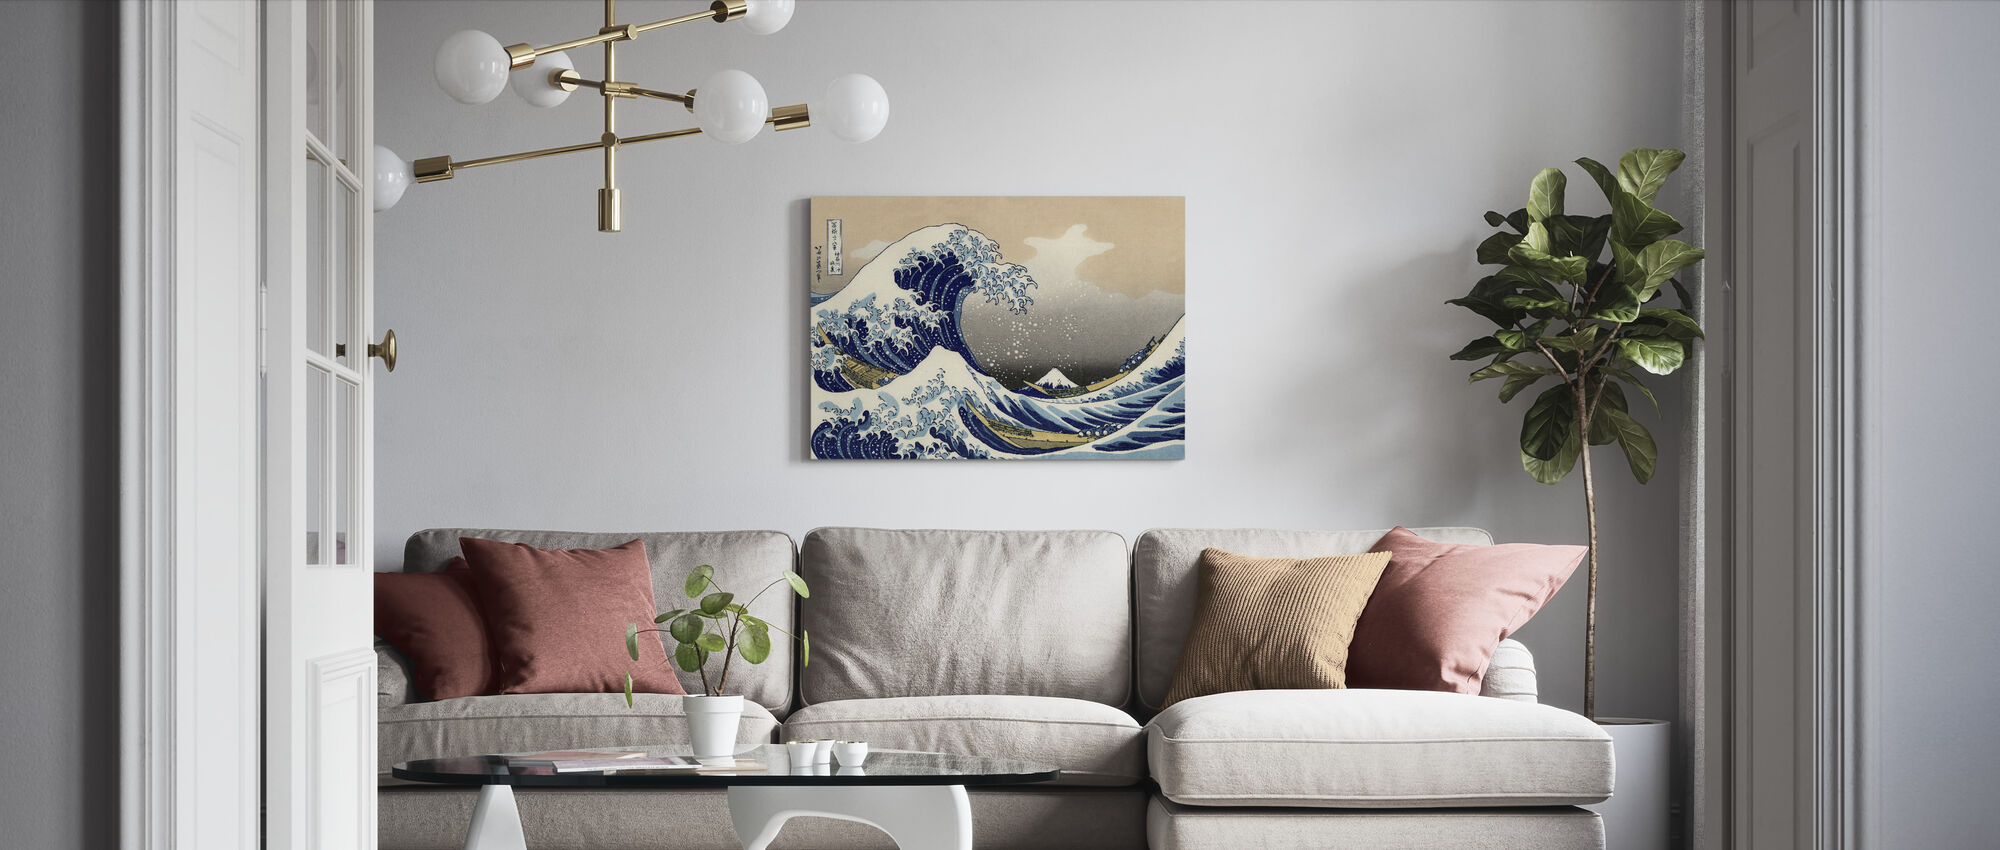 Great Wave, Katsushika Hokusai - Canvas print - Living Room